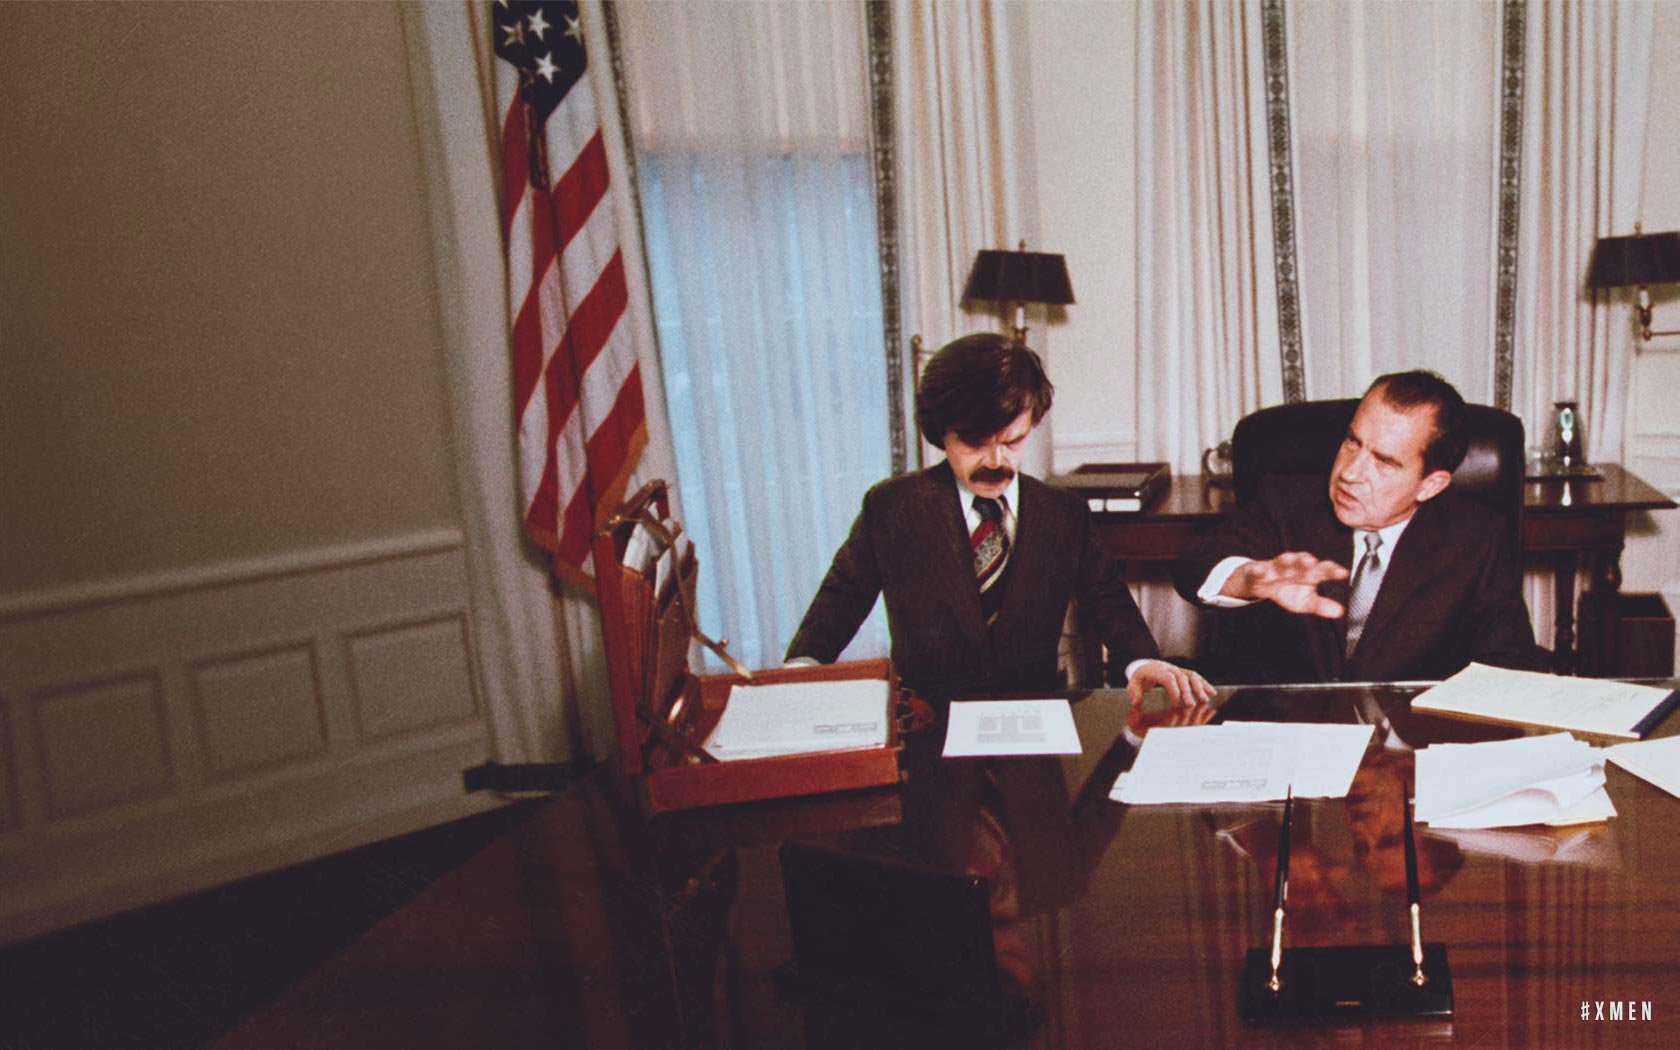 Congressional investigators seeking evidence of an improper relationship between Trask Industries and the Nixon White House are stymied when they discover that 18½ minutes of a meeting between Bolivar Trask and President Nixon have been completely erased.